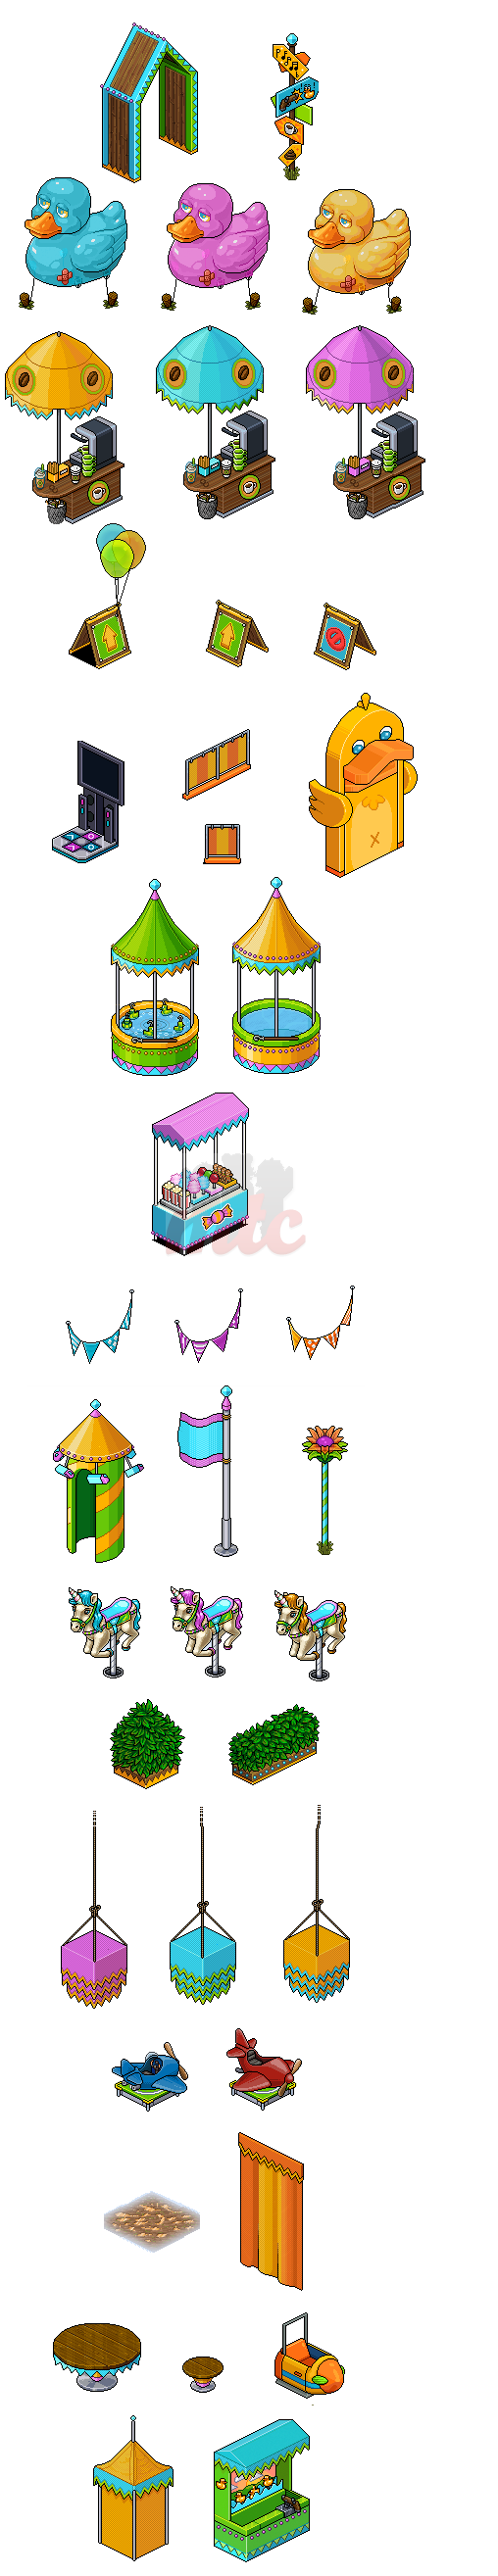 HabboPalooza14_furniture